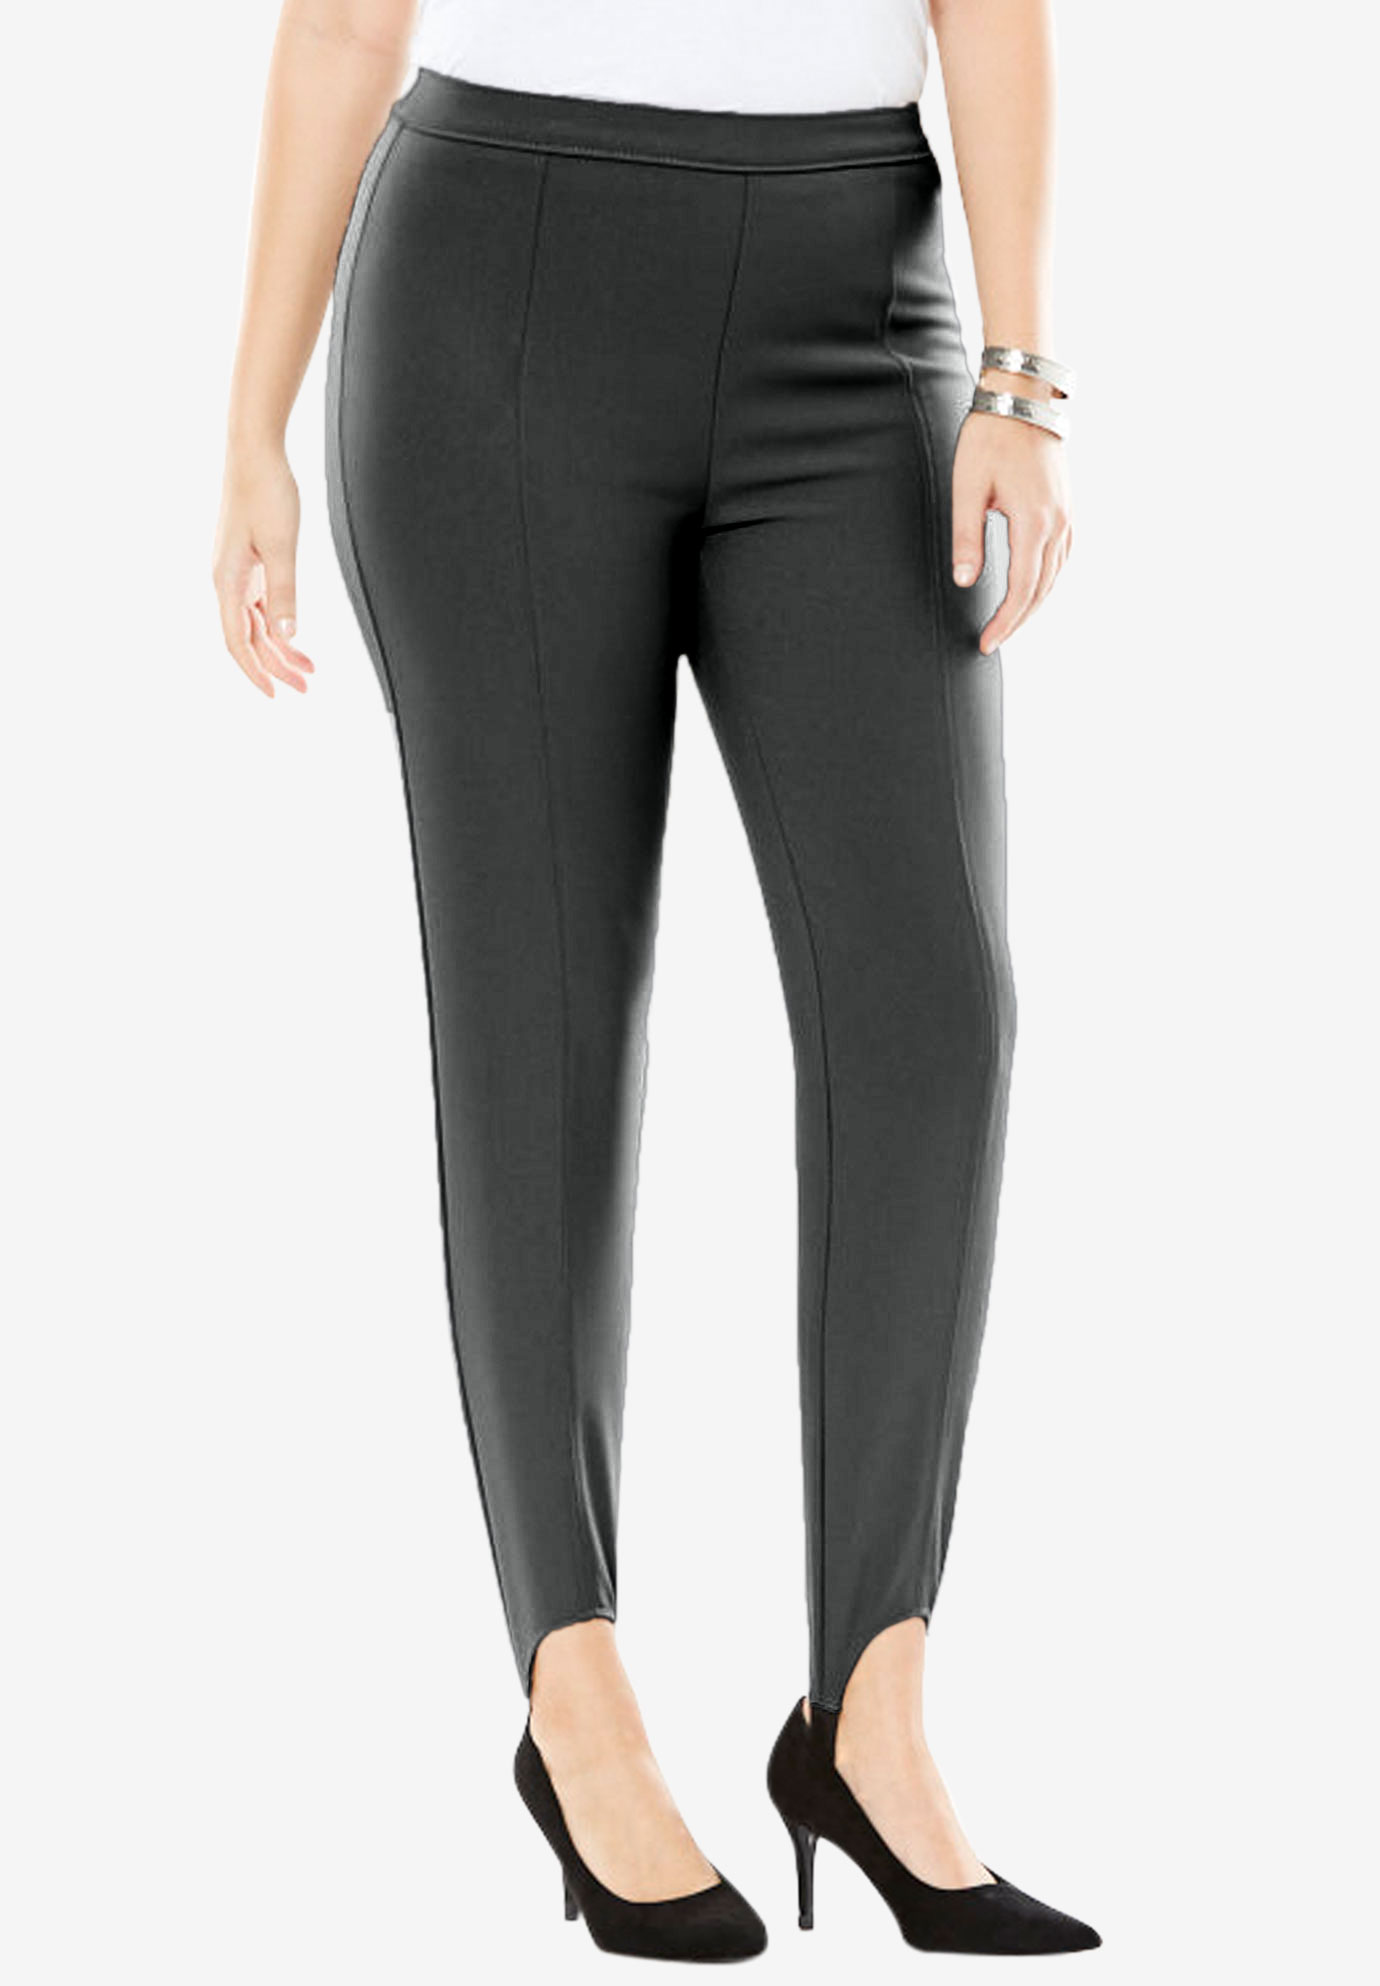 5a8f37df509 Bend Over Stirrup Pant